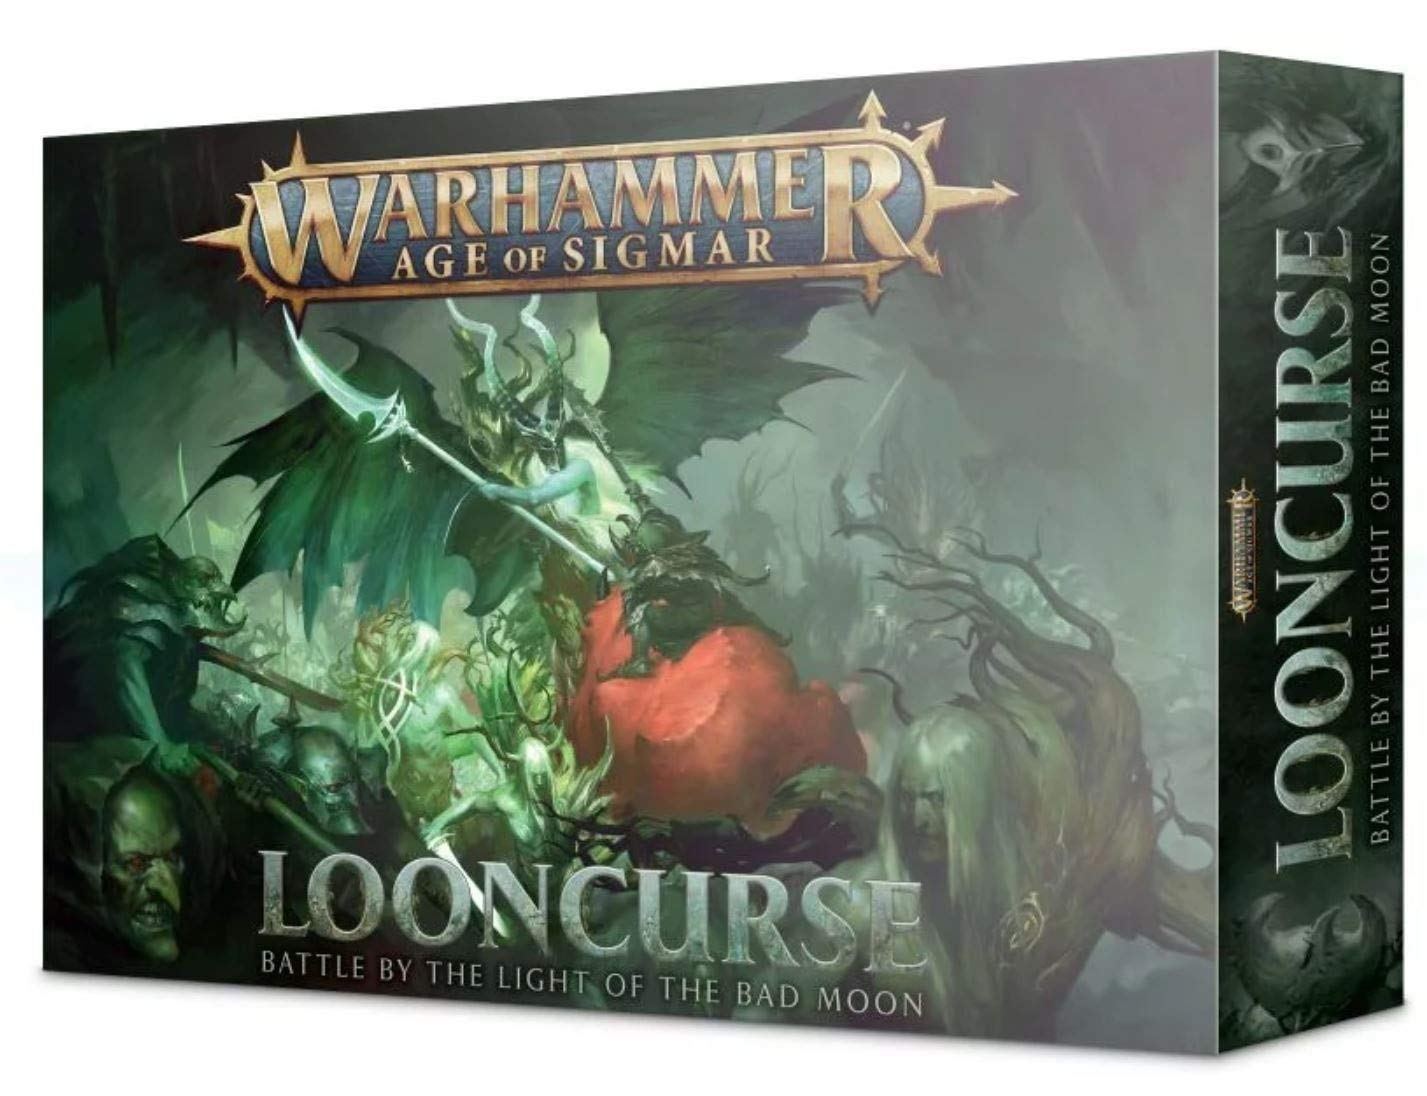 Age of Sigmar: Looncurse Core Game